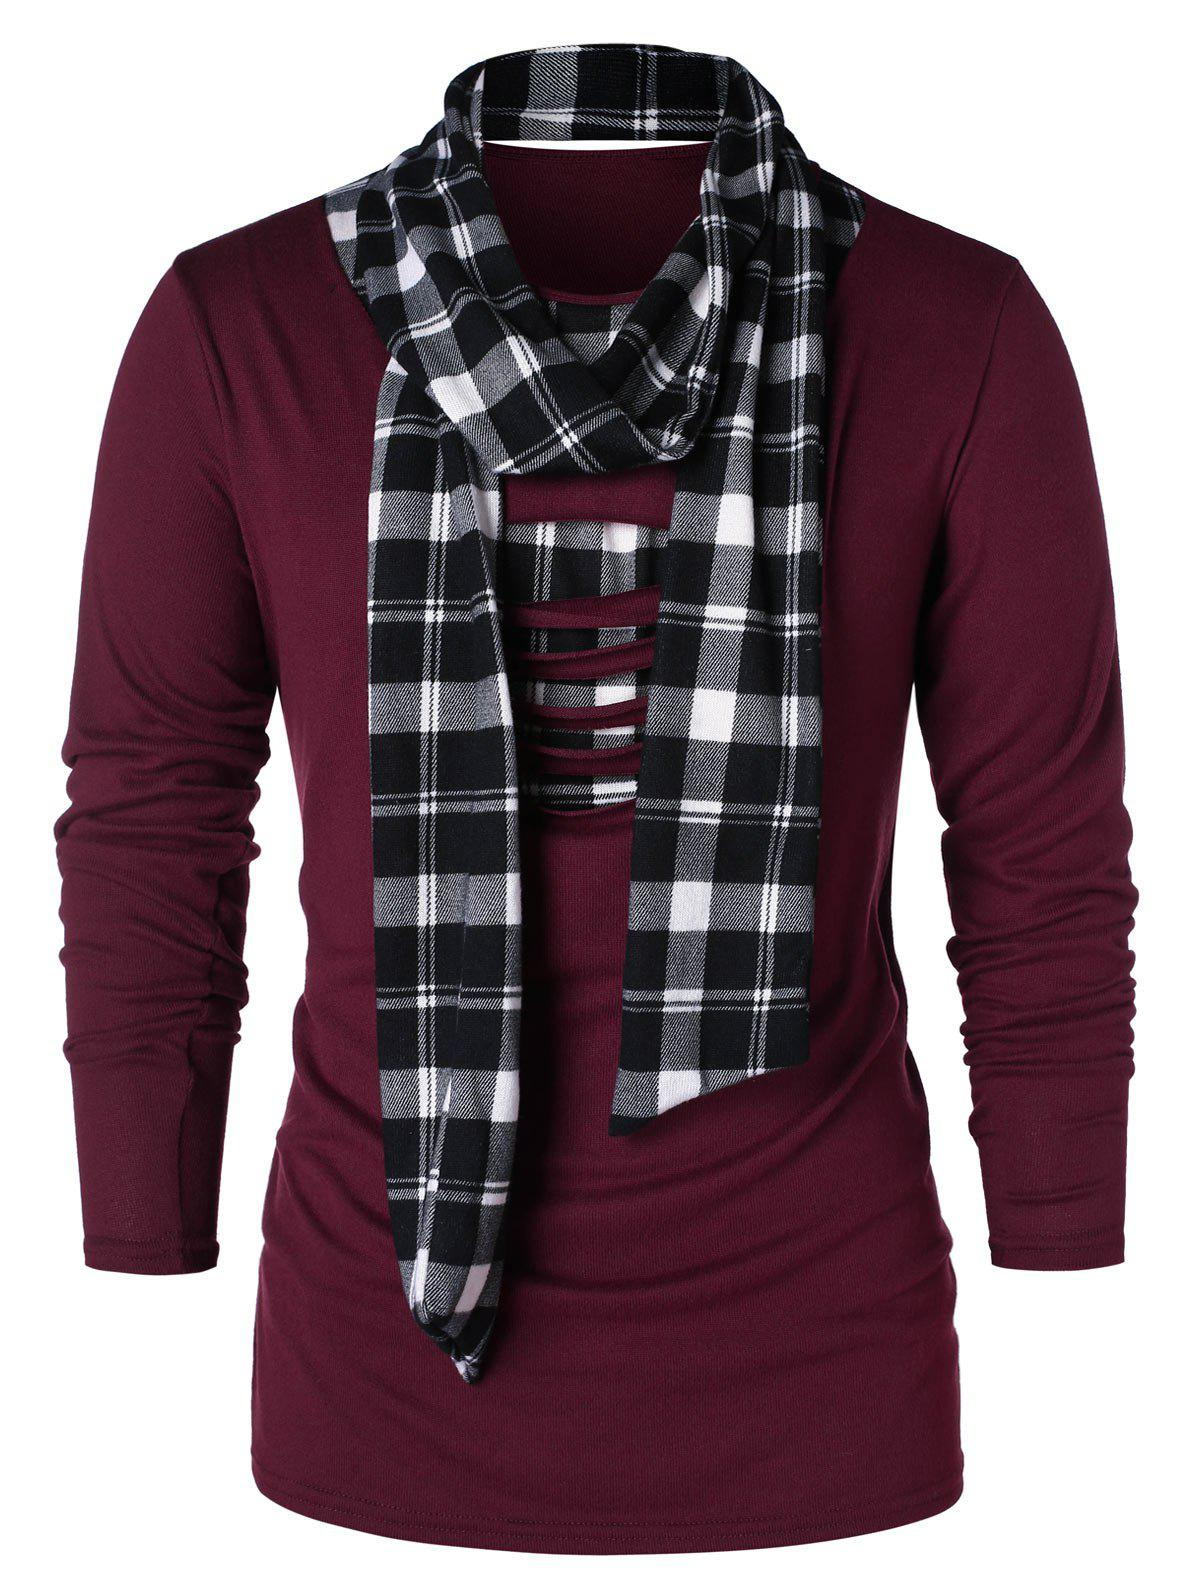 Checked Print Destroyed Scarf Collar T-shirt - FIREBRICK L